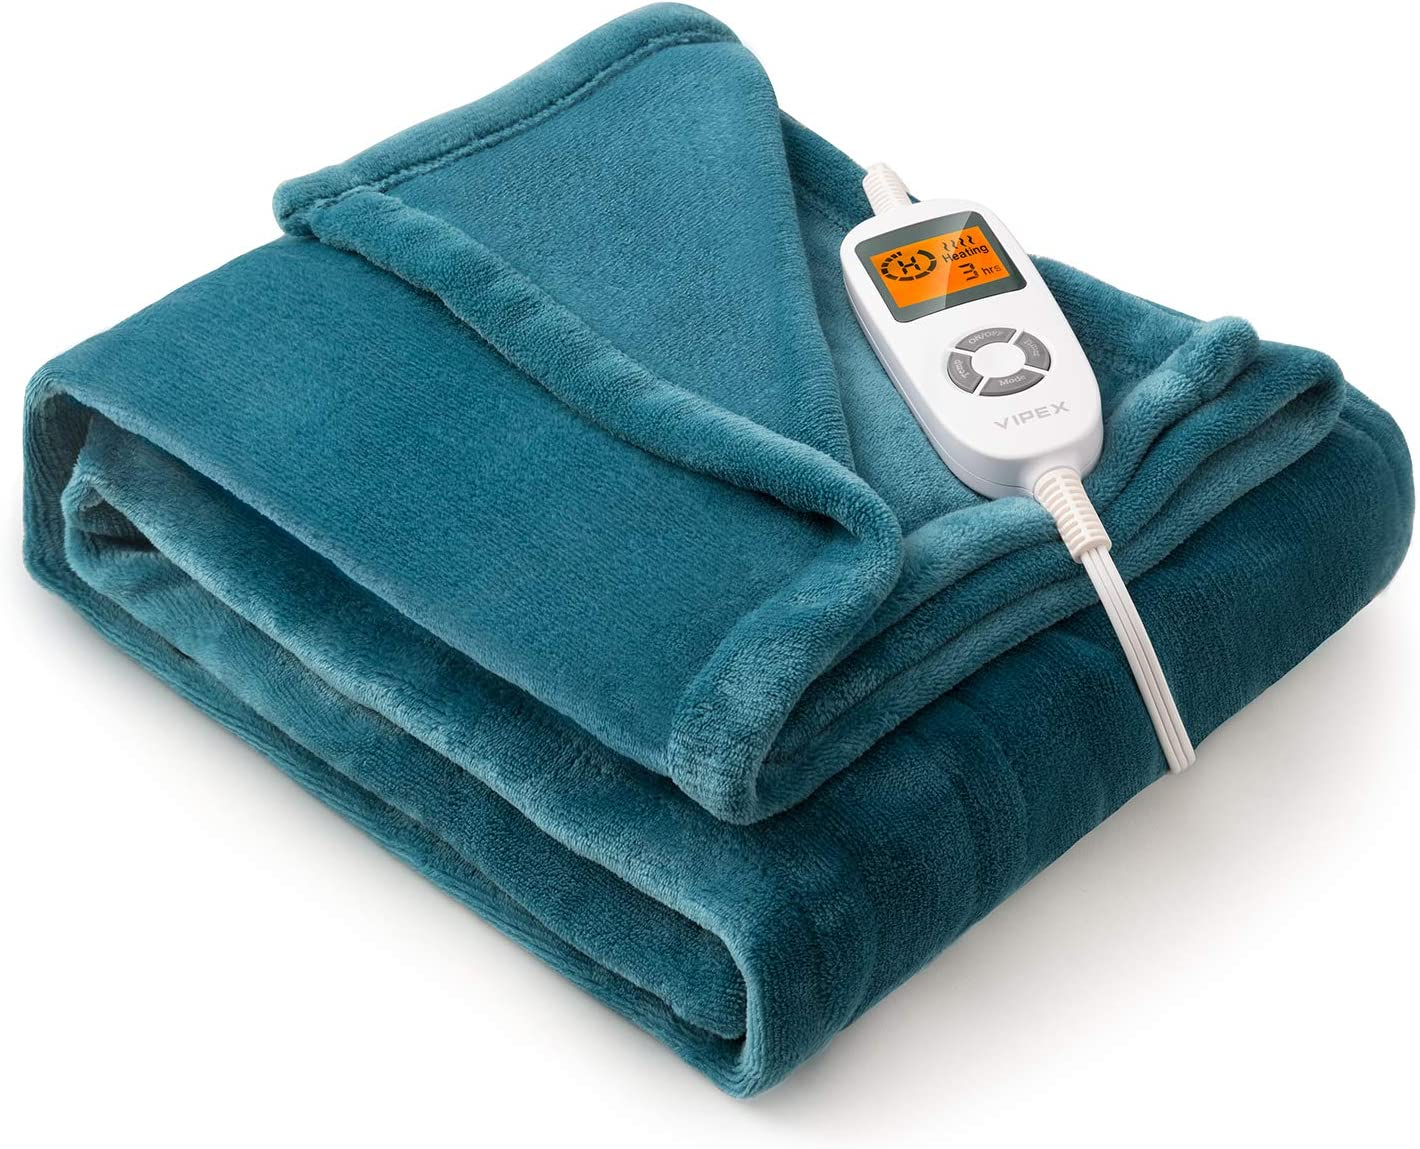 "VIPEX Heated Blanket Electric Throw, 50"" x 60"" Flannel Electric Blanket with 10 Heating Levels & 3 Timer Settings Auto-Off, Travel Home Office Use, ETL Certified, Machine Washable, Forest Green"